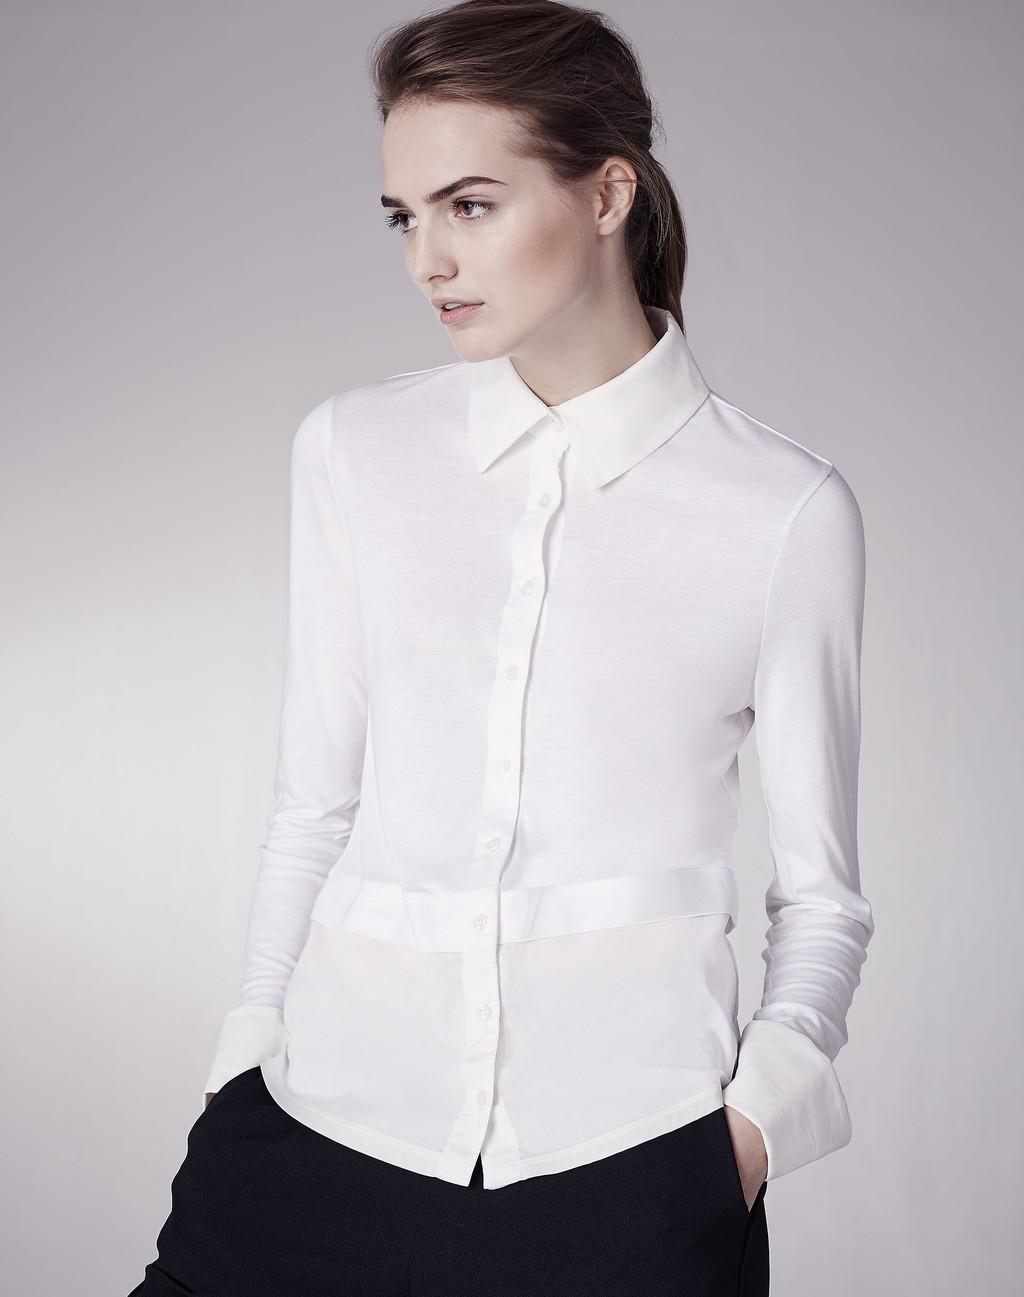 The Cuff + Tail Layer Shirt White - neckline: shirt collar/peter pan/zip with opening; pattern: plain; style: shirt; predominant colour: white; occasions: work; length: standard; fibres: viscose/rayon - 100%; fit: body skimming; sleeve length: long sleeve; sleeve style: standard; texture group: crepes; pattern type: fabric; season: s/s 2016